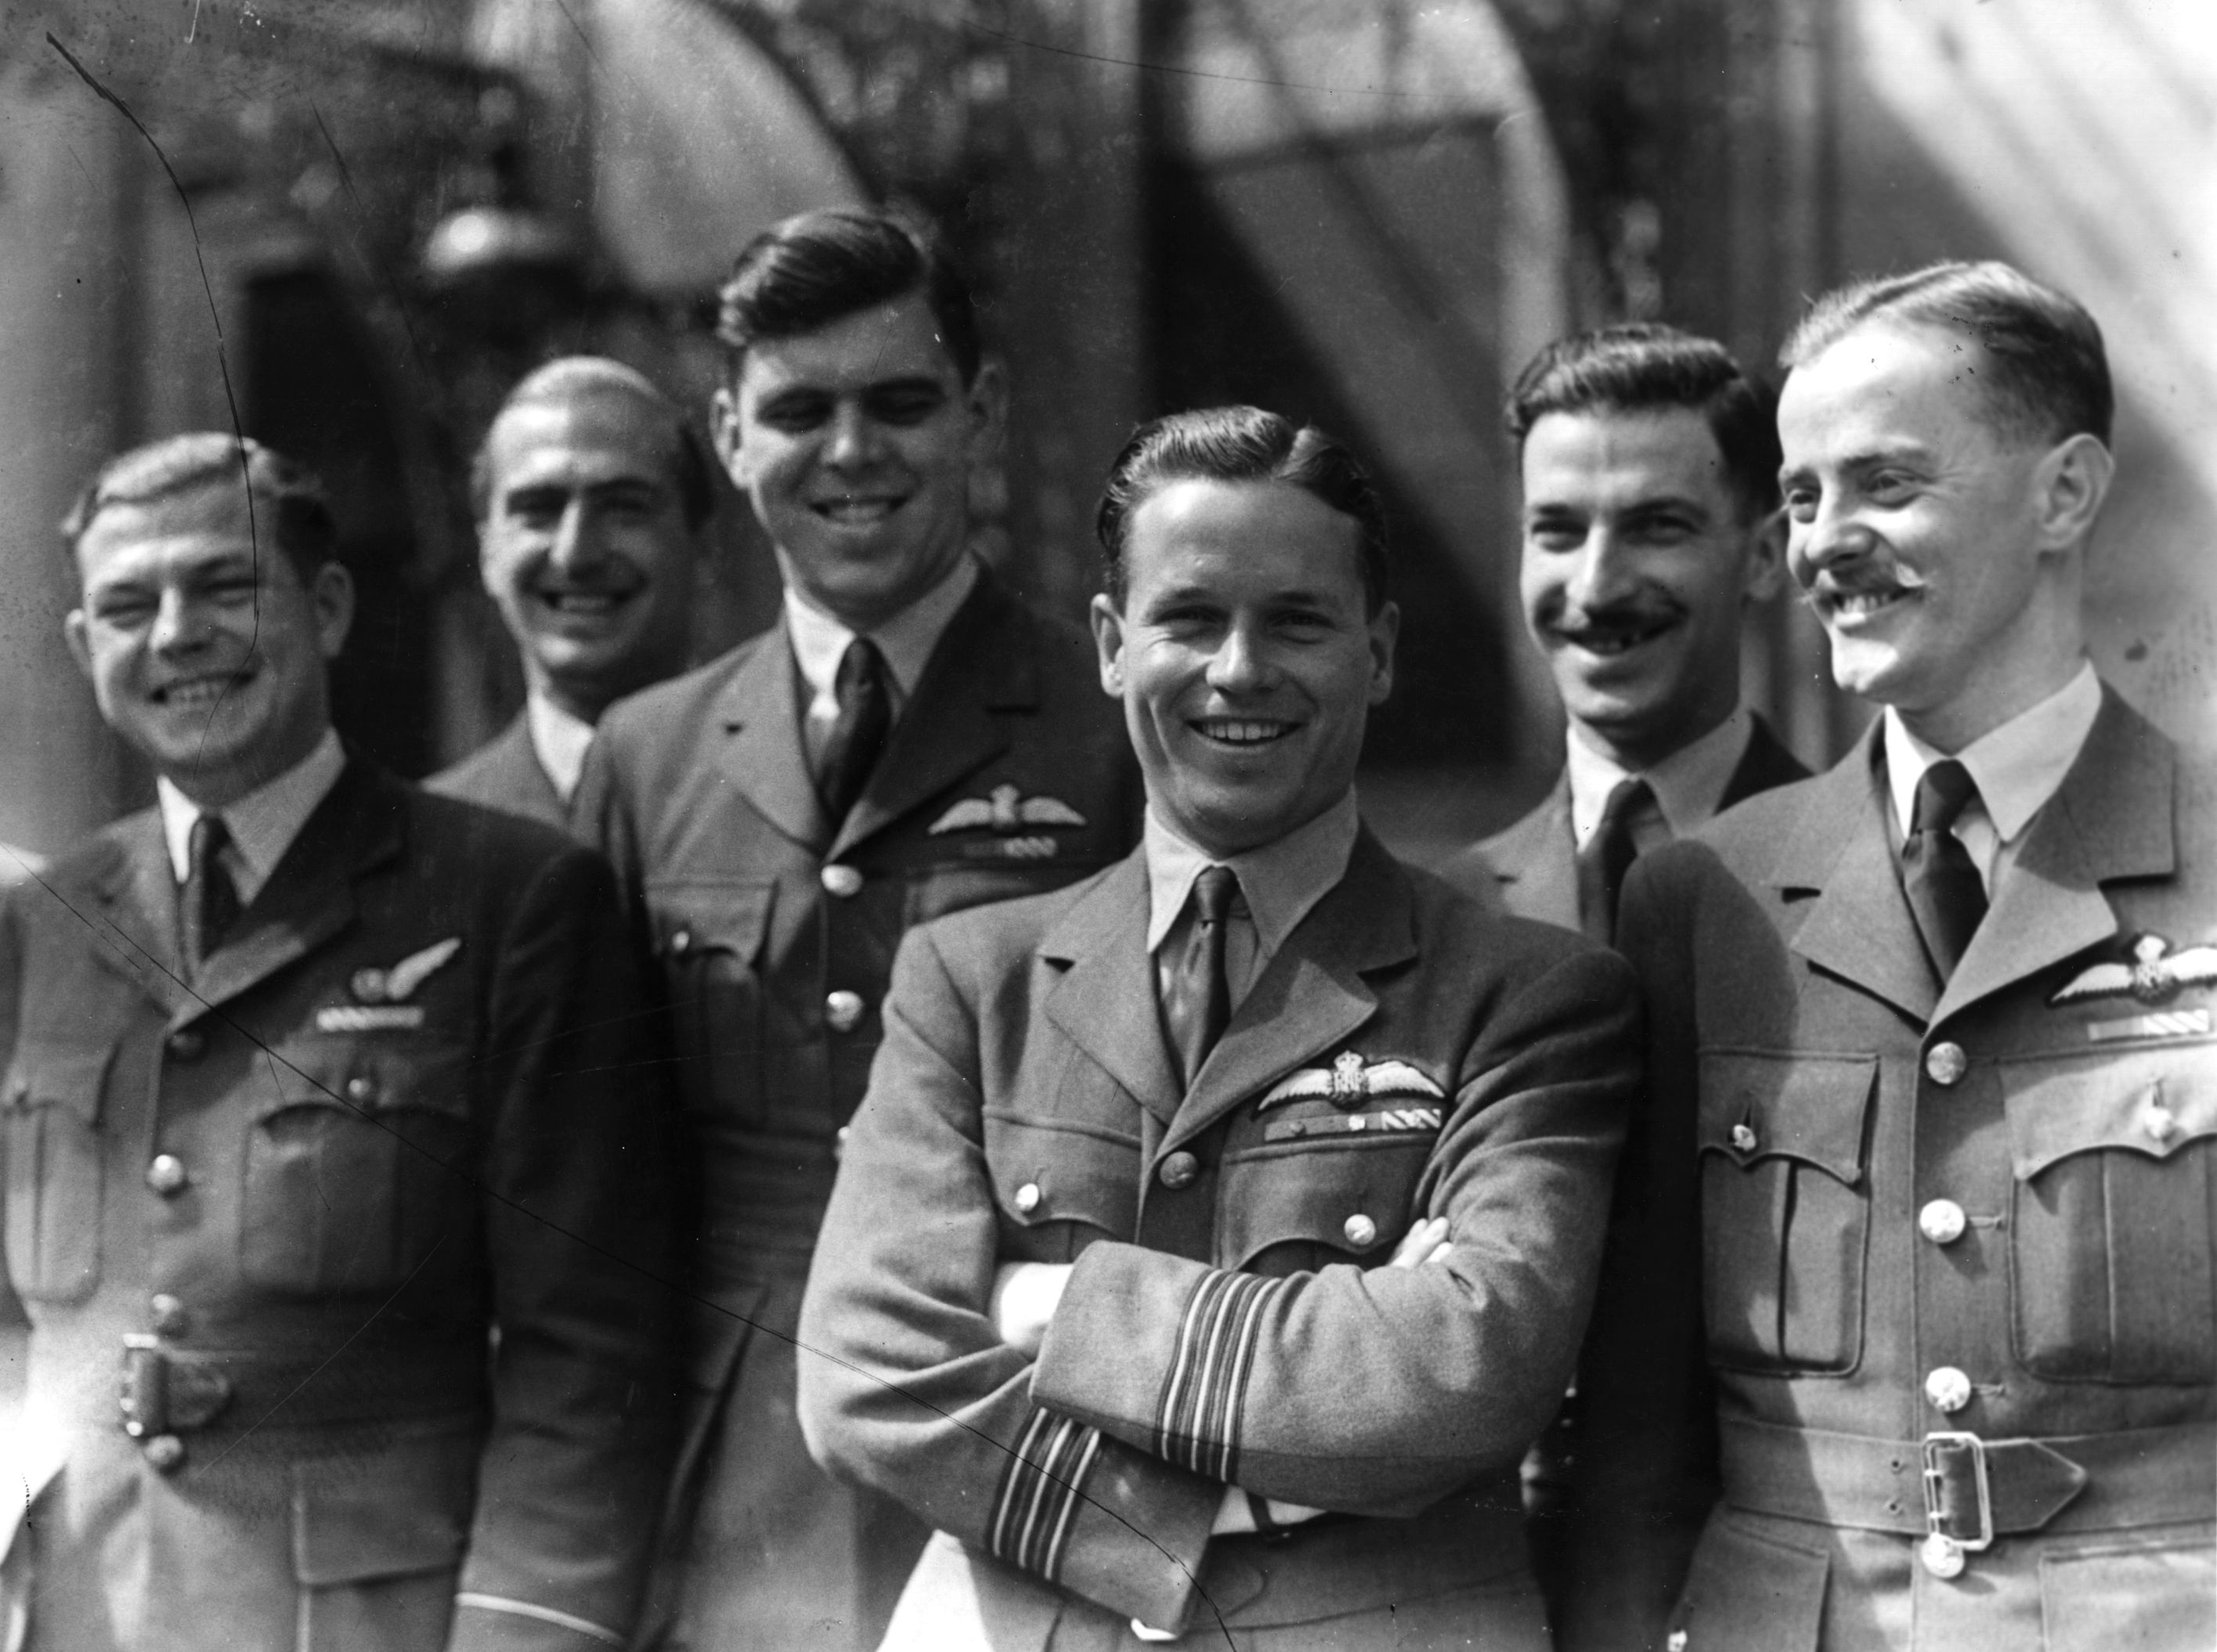 Members of 617 squadron, known as the Dambusters